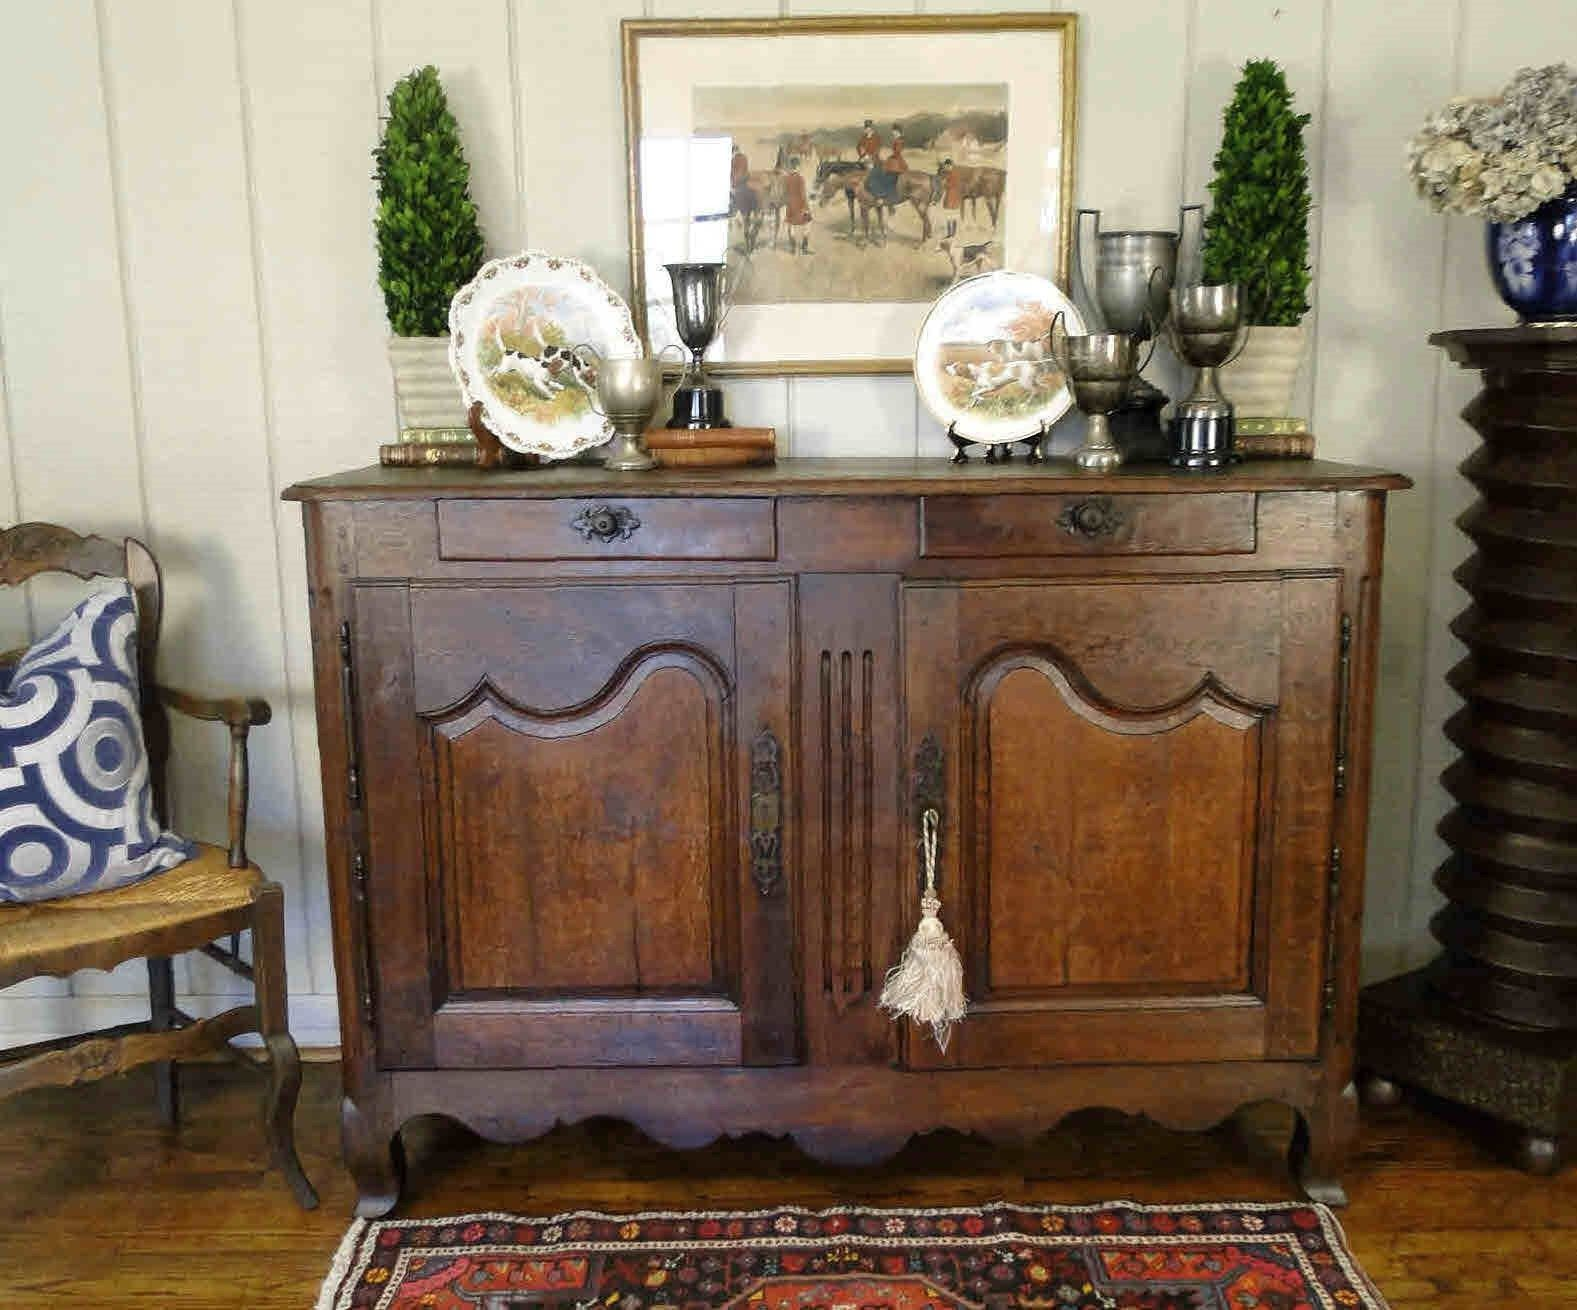 Antique French Country Buffet Sideboard Server Provence France Dark Wood 1800's